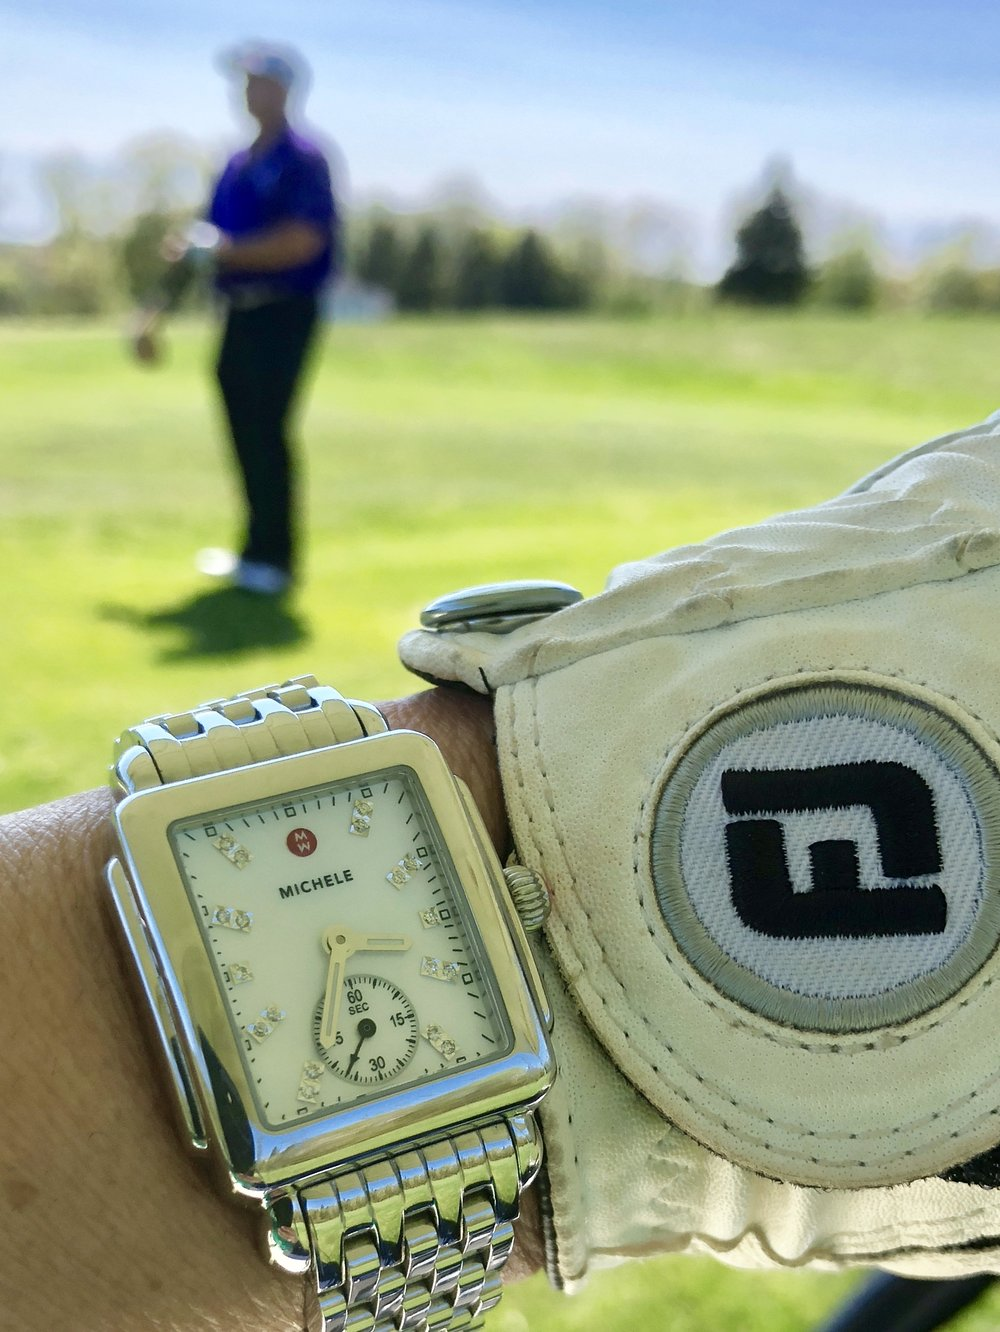 Out golfing with the M.r at mingo loop in rangeley, Maine. My michele watch is telling me it's time to head into town for dinner and a cocktail.